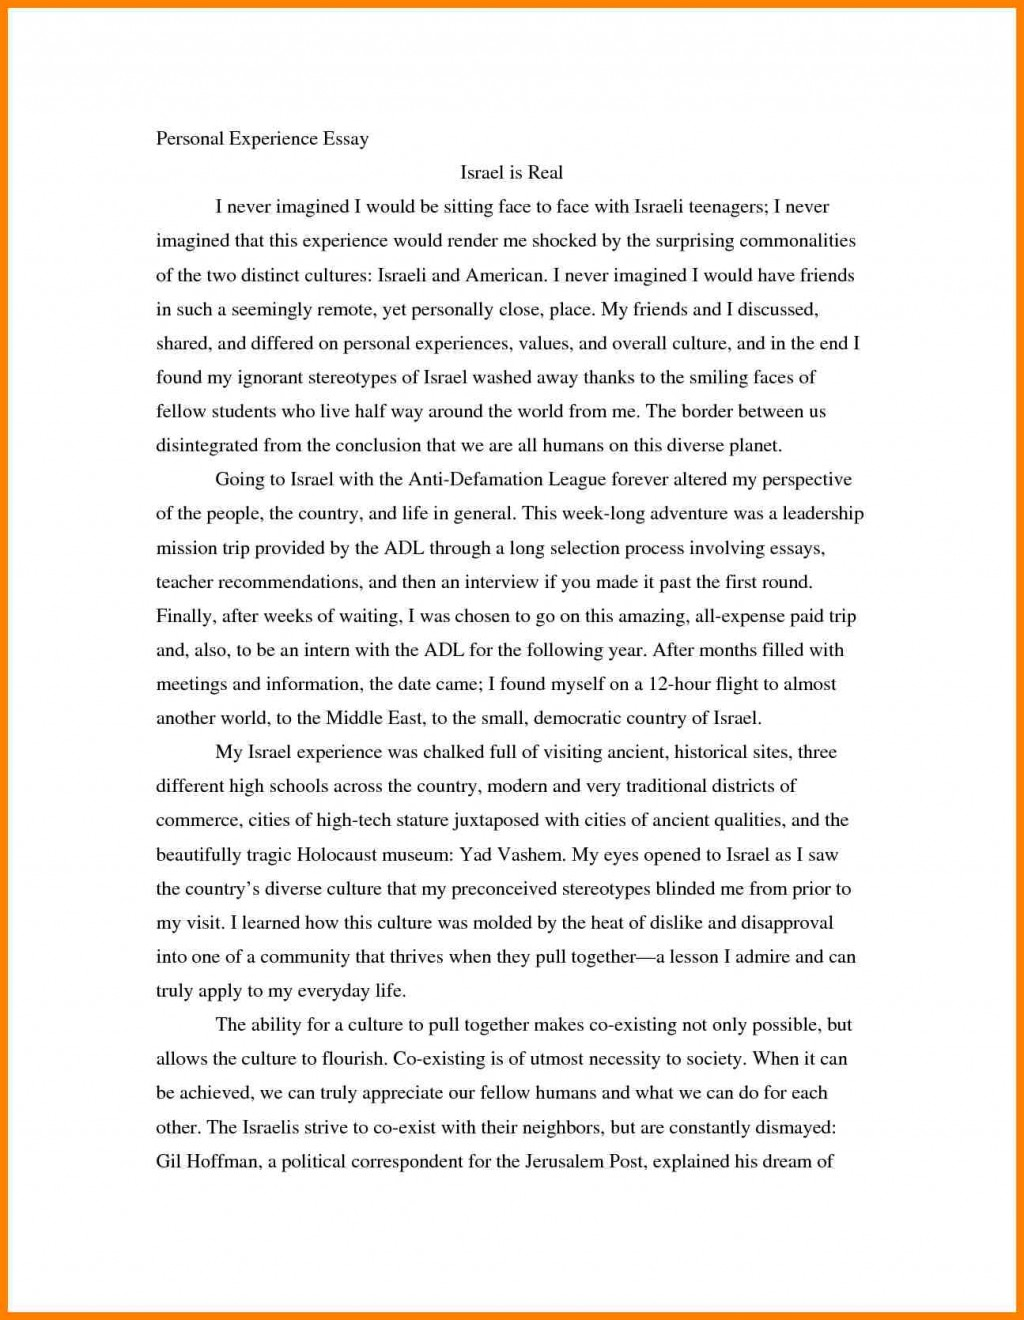 001 Essaye Personal Experience Bunch Ideas Of Writing Sample College Essays Charminges Fearsome Essay Narrative Example Prompts Large